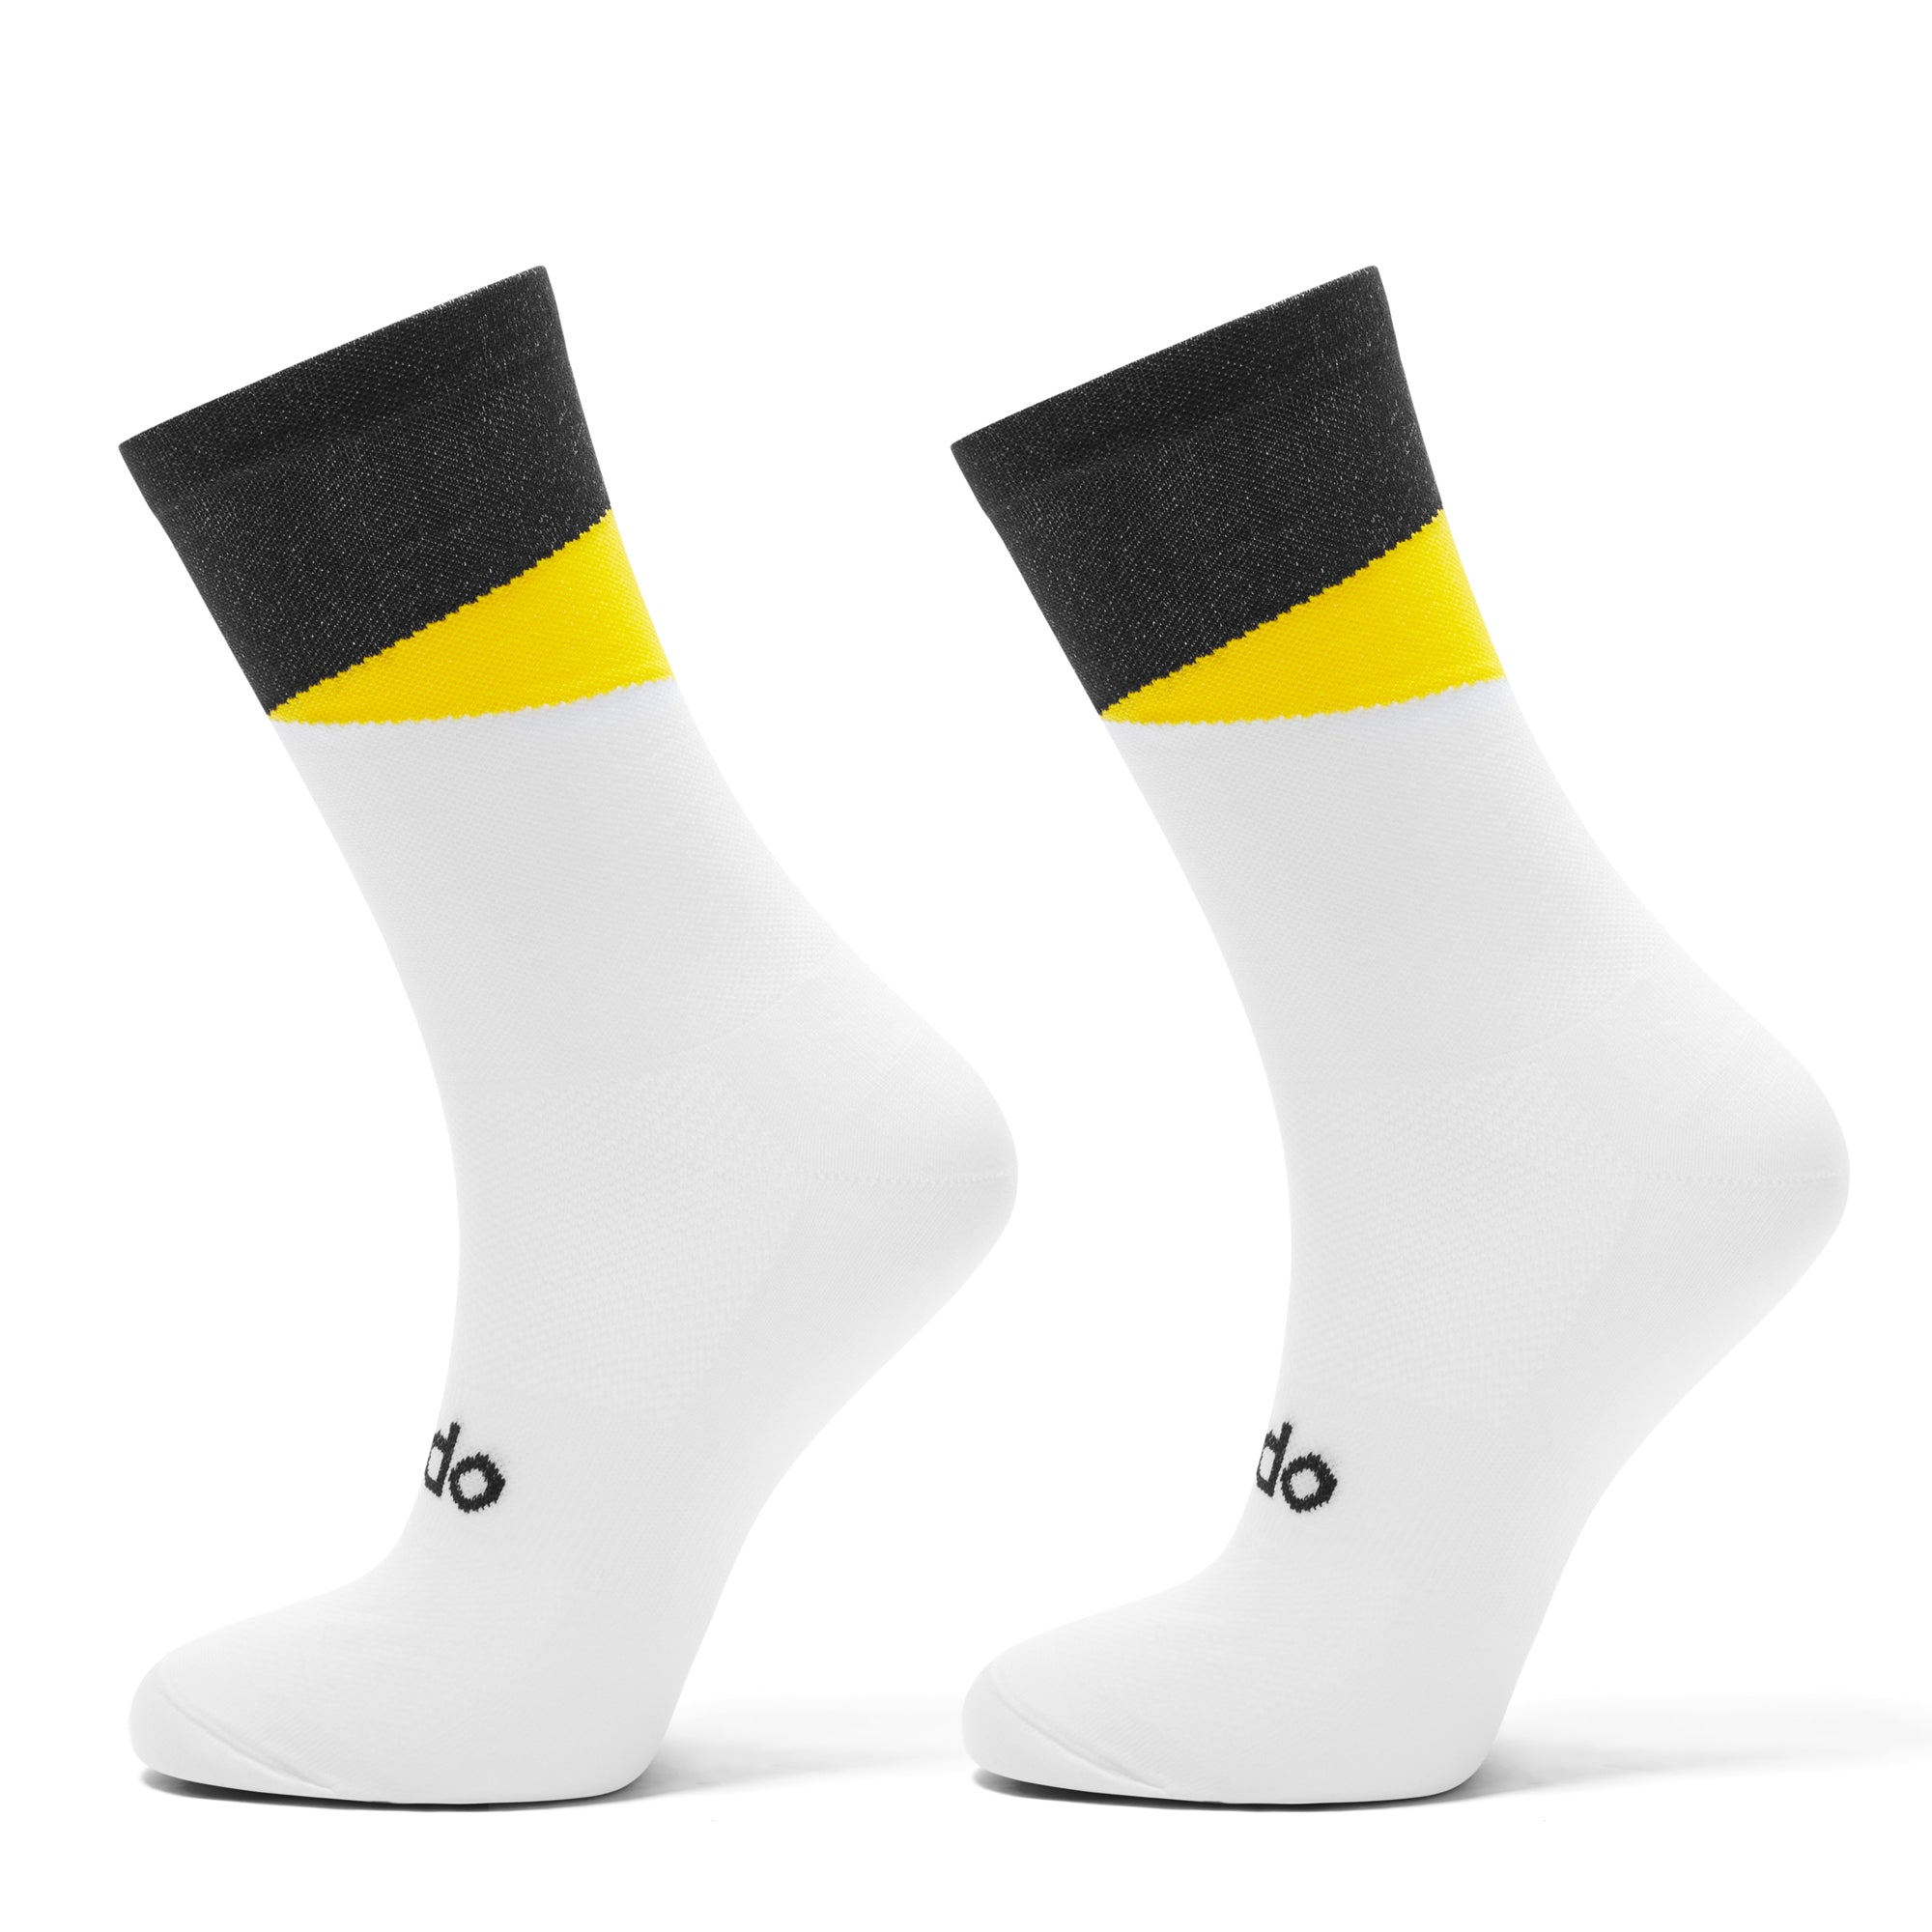 White and yellow cycling socks designed to look like cats eyes